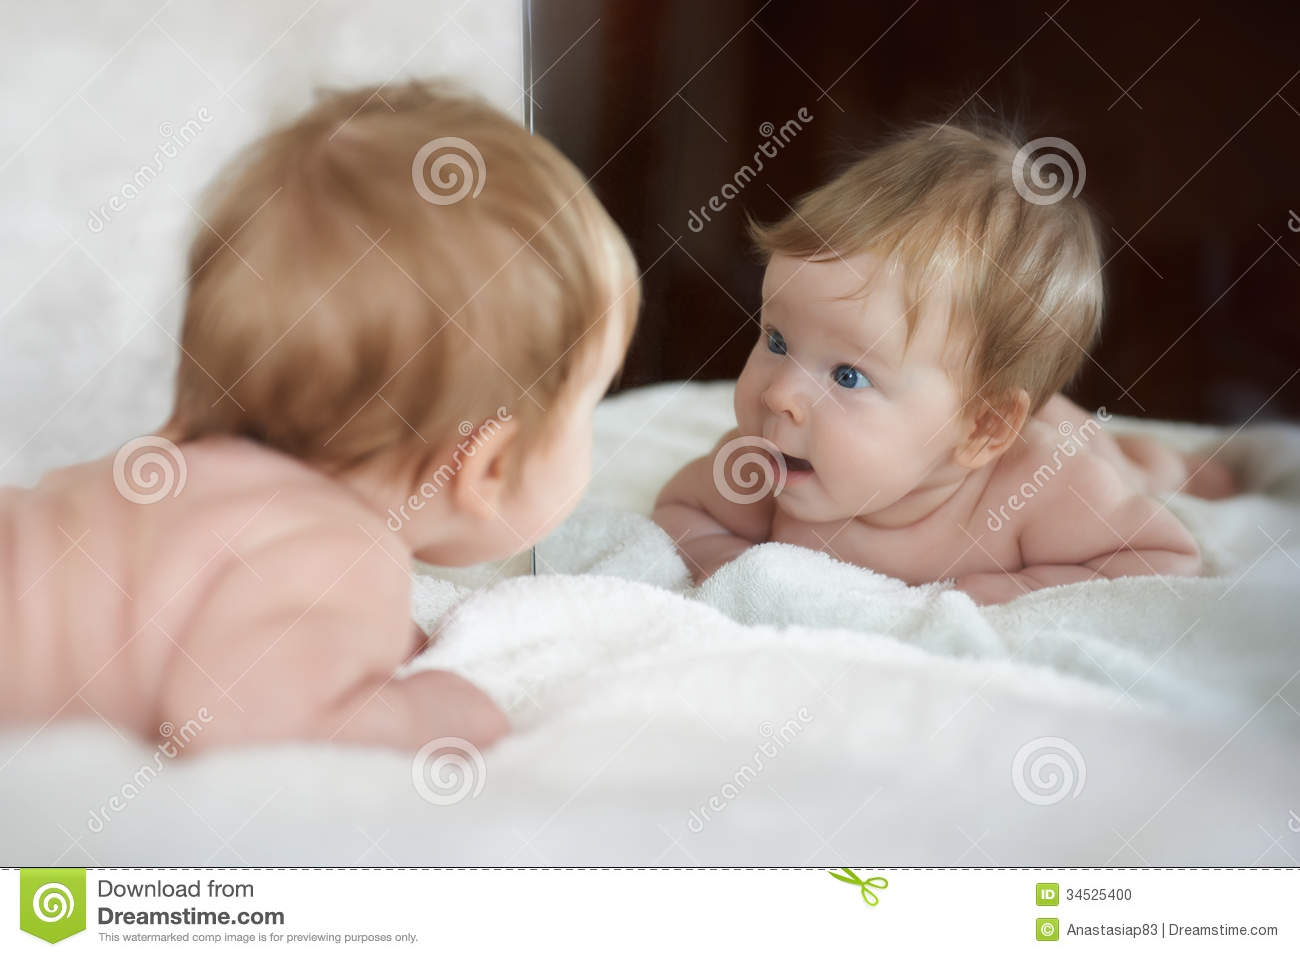 Little girl met a new friend in the mirror reflect